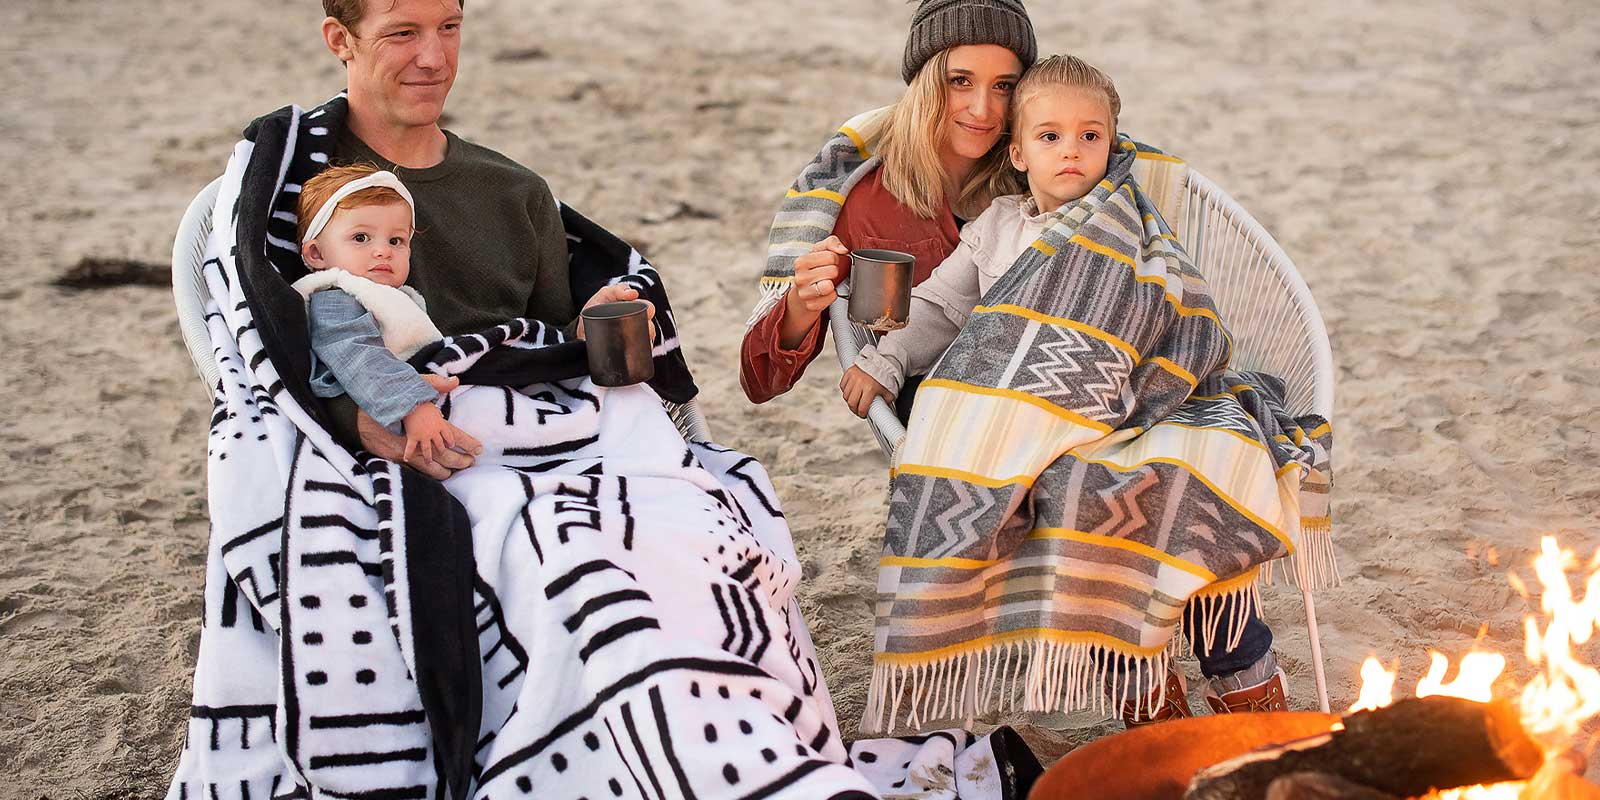 Thula tula camping blanket on beach with couple and kidws